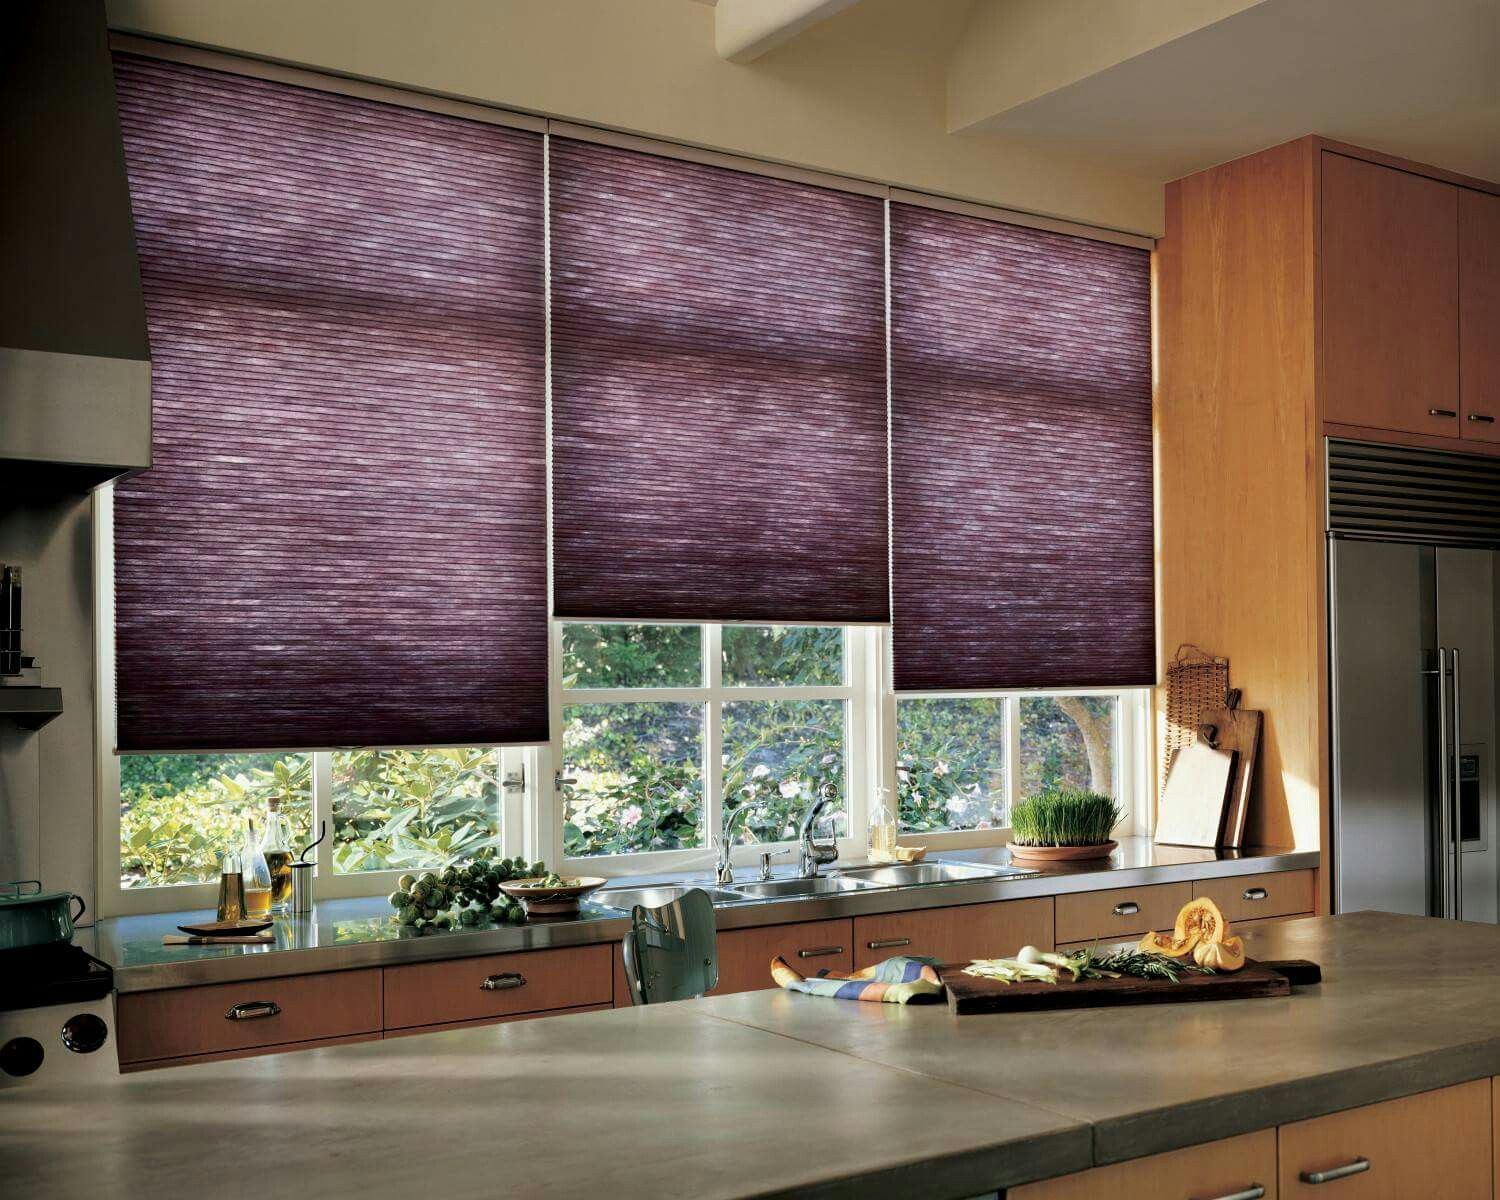 Kitchen window kitchen blinds  pin by gluack punk on for sweet home  pinterest